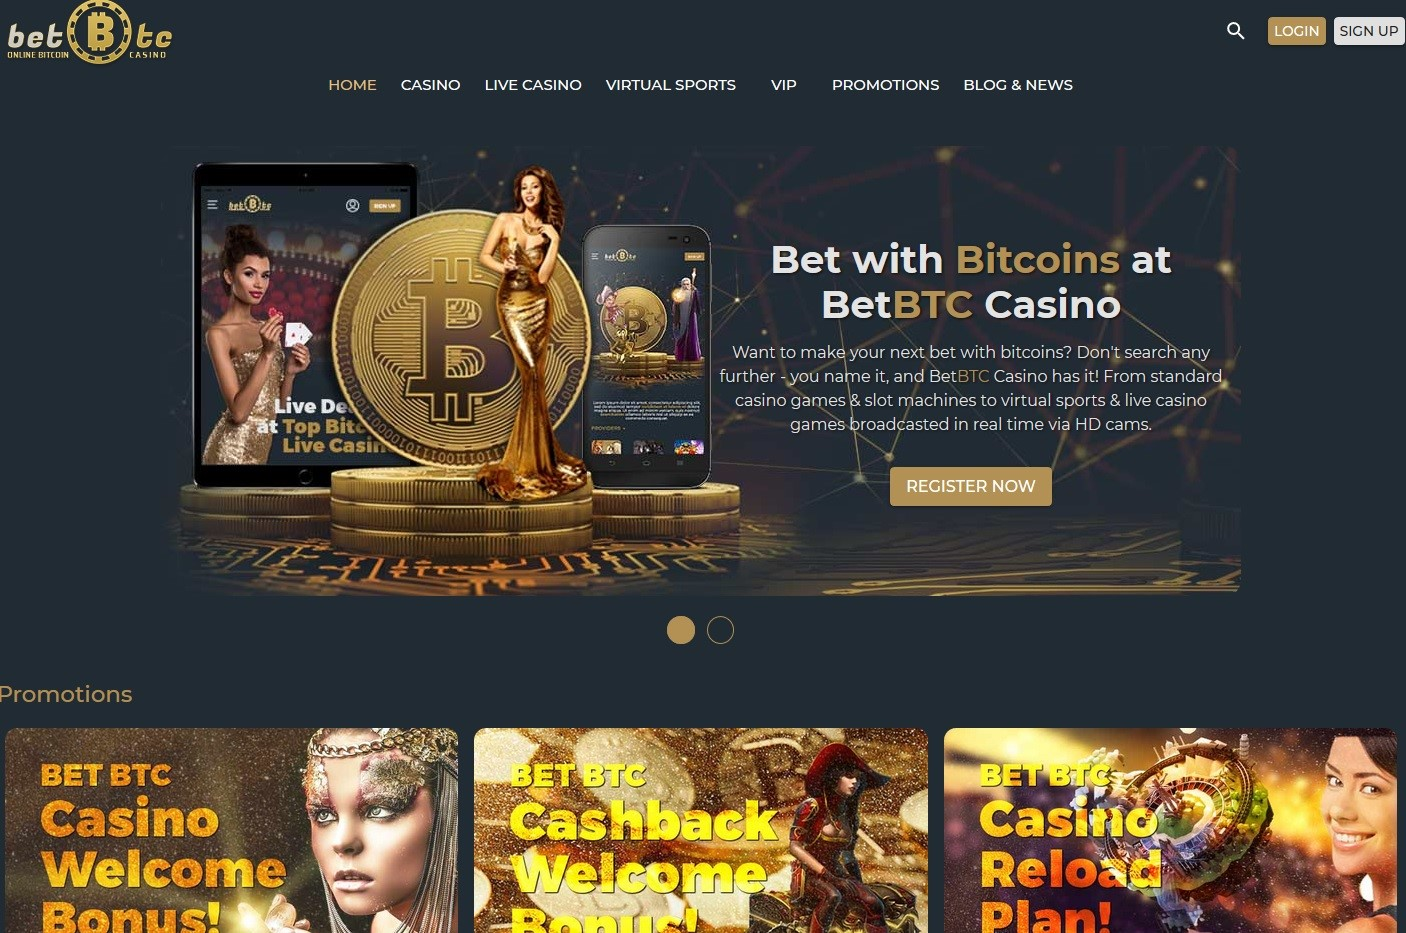 Purchase Bitcoins & Gamble Online